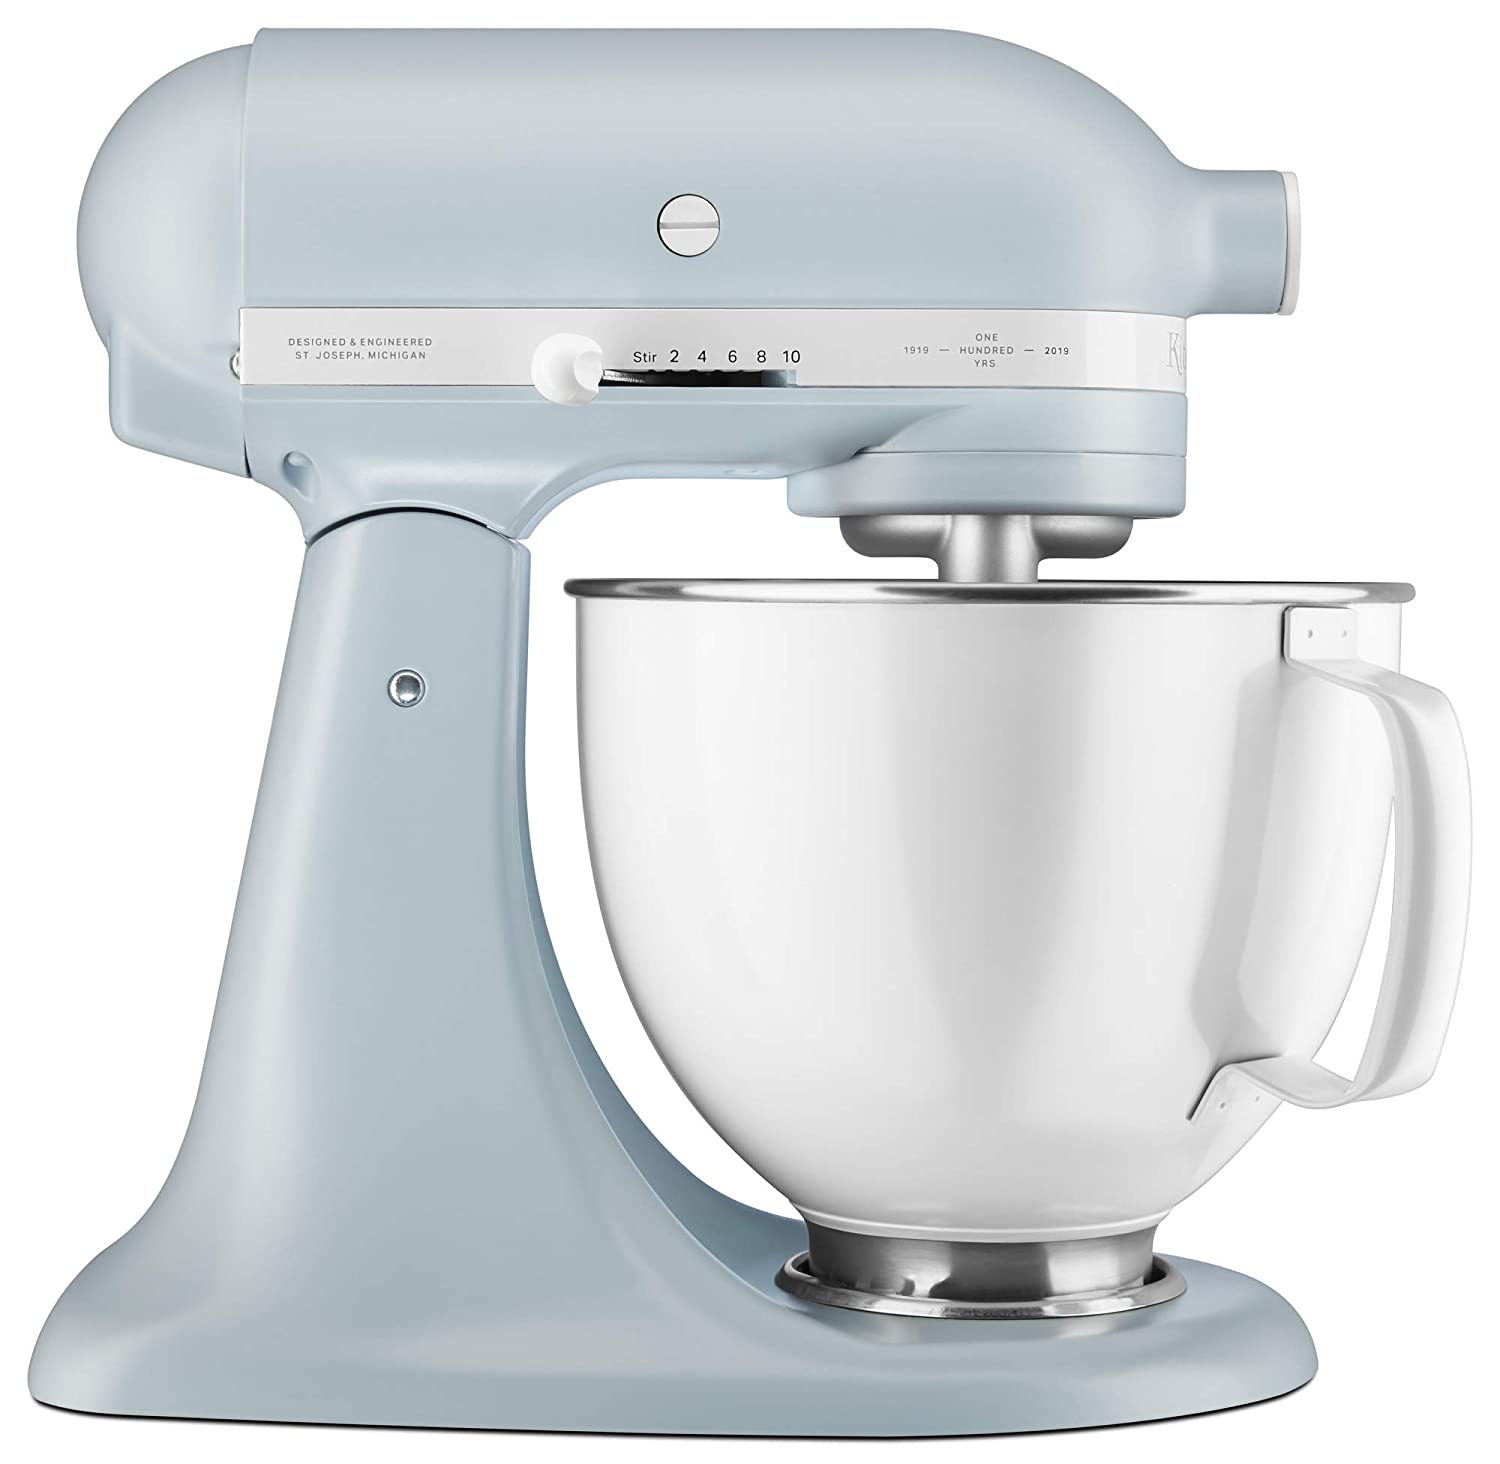 KitchenAid KSM180RPMB 100 Year Stand Mixer, 5 Qt, Misty Blue